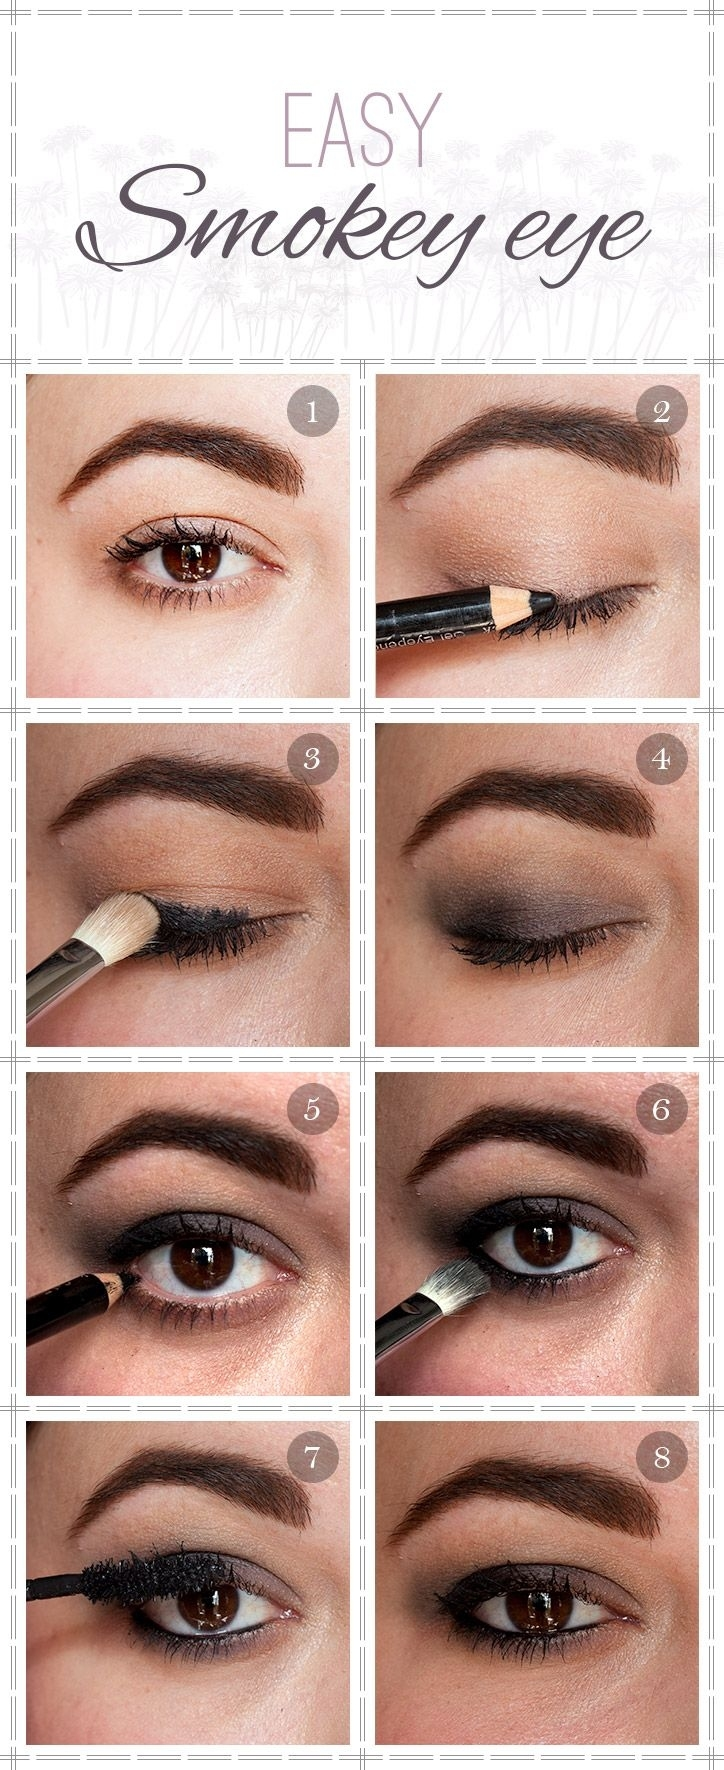 Easy Smokey Eye Tutorial | Eye Makeup Tips, Eye Makeup pertaining to Easy Smokey Eye Makeup Video